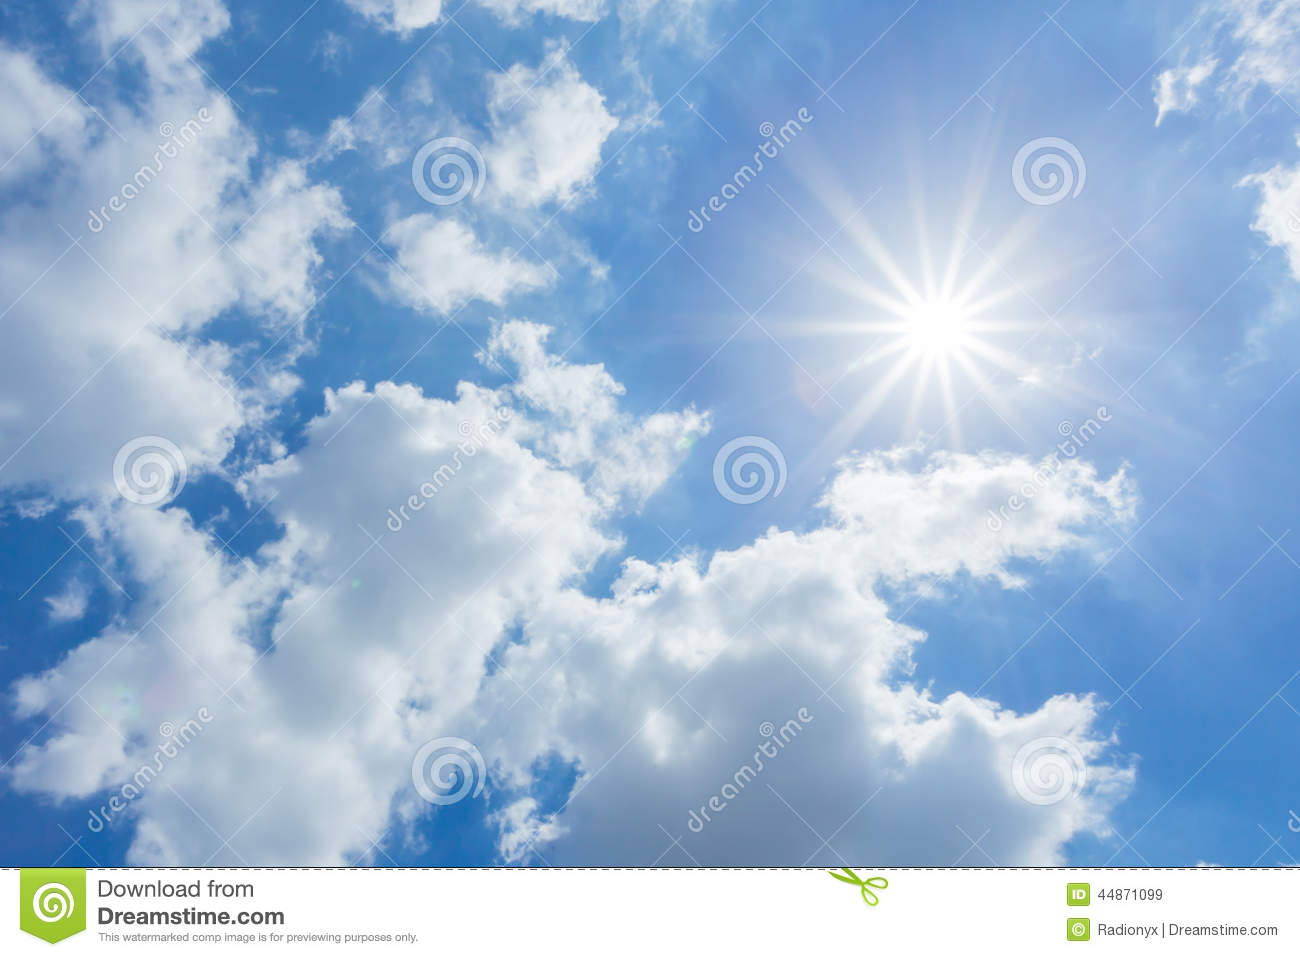 3d Cube Live Wallpaper Free Download The Sun Shines Bright In The Daytime In Summer Blue Sky